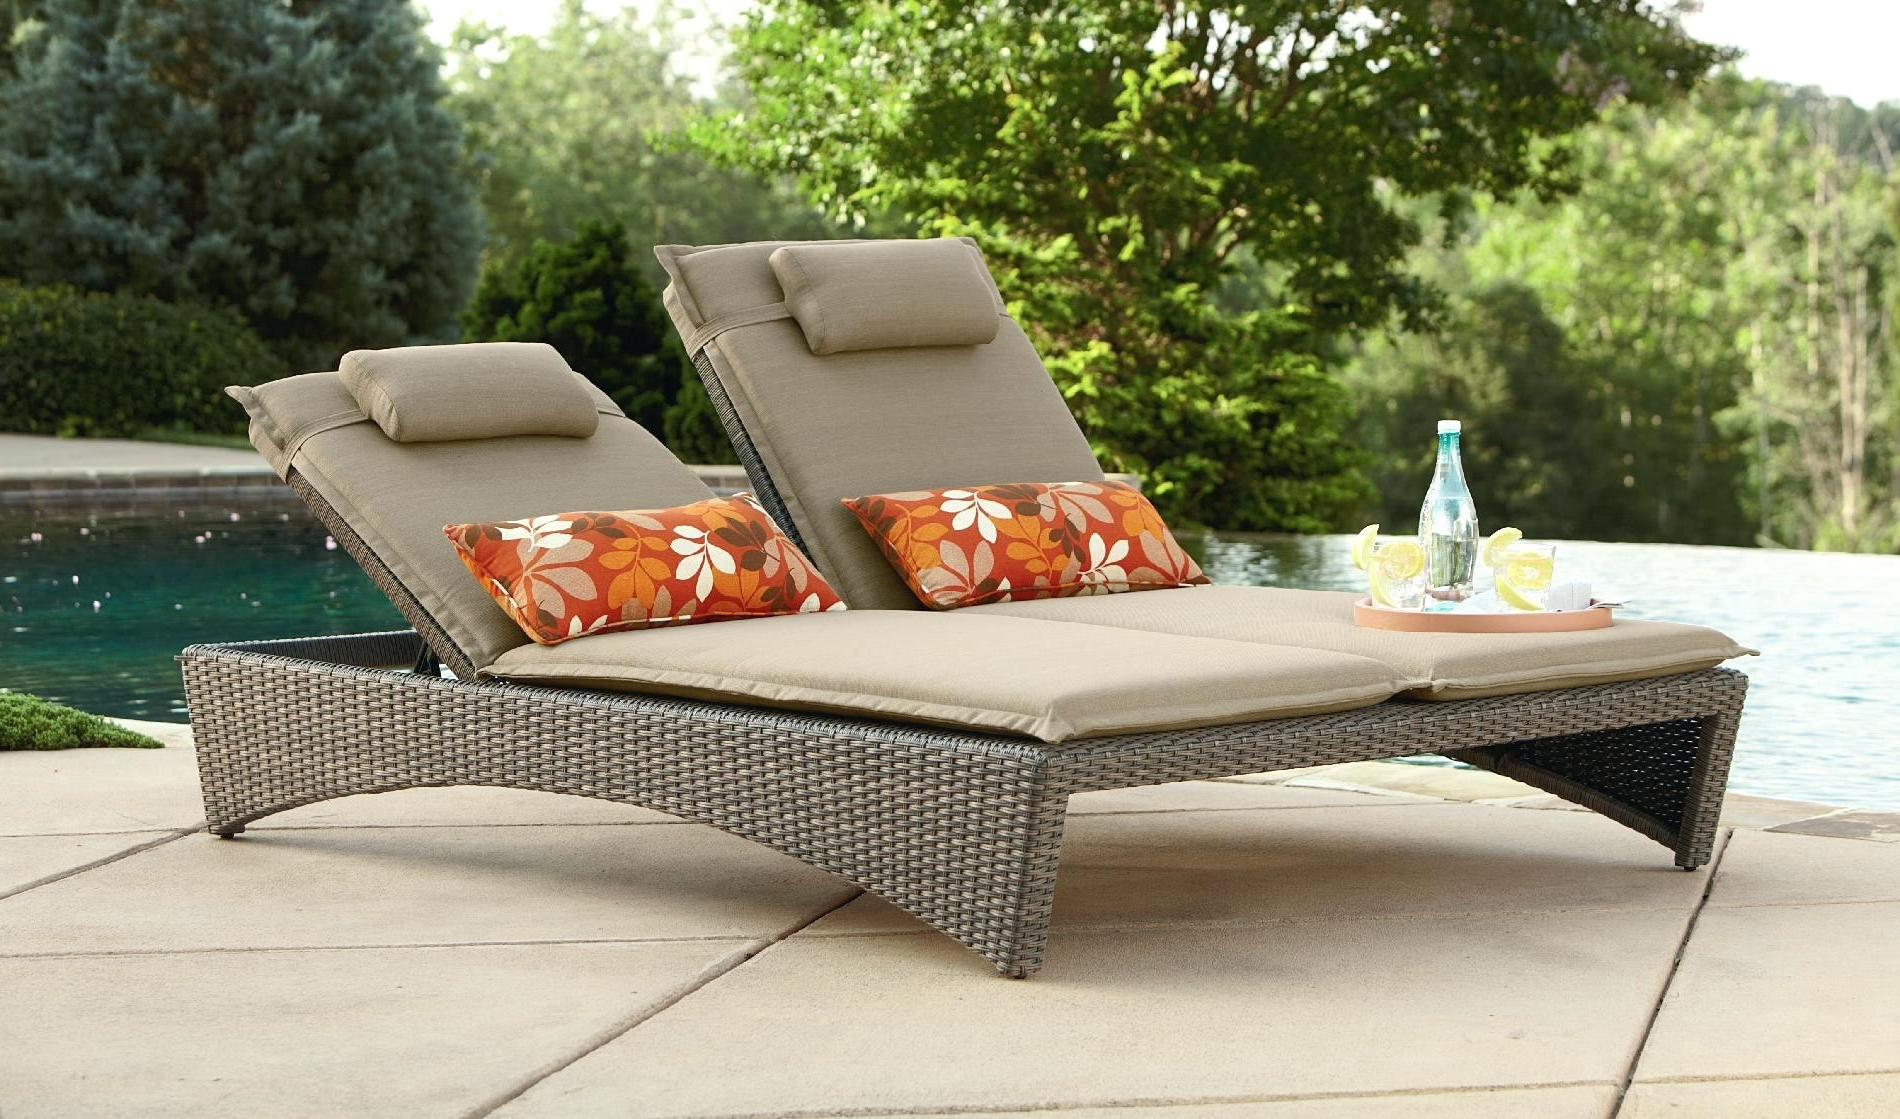 Well Liked Deck Chaise Lounge Chairs In Outdoor Chaise Lounge Chairs Under 100 Awesome Chair For Two (View 14 of 15)